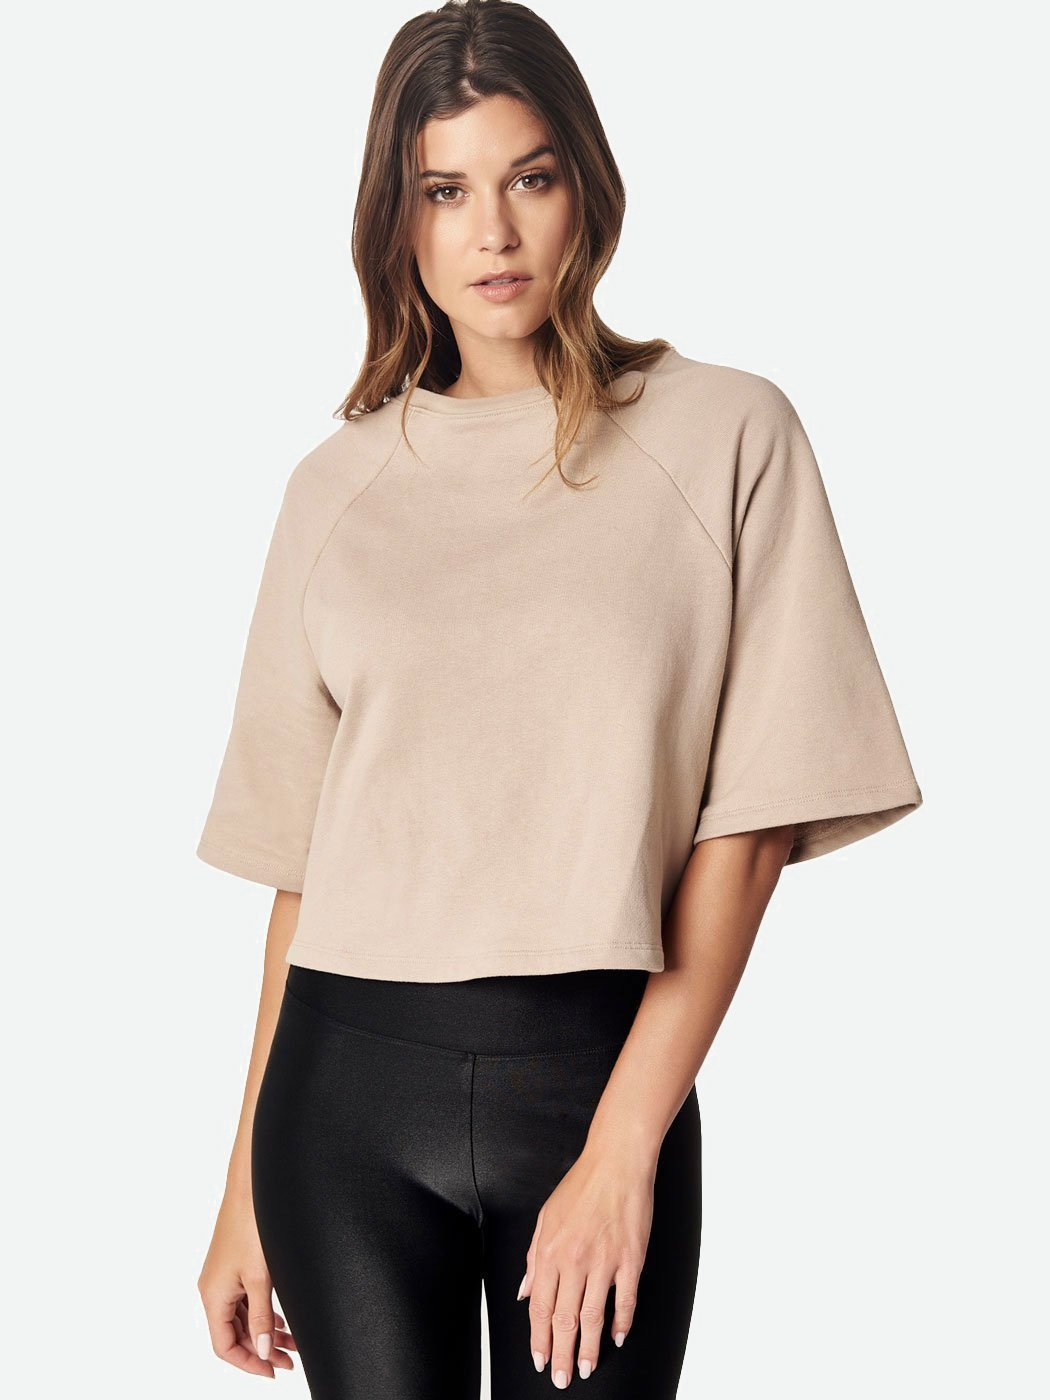 Off Duty Boxy Sweatshirt Fawn, Final Sale